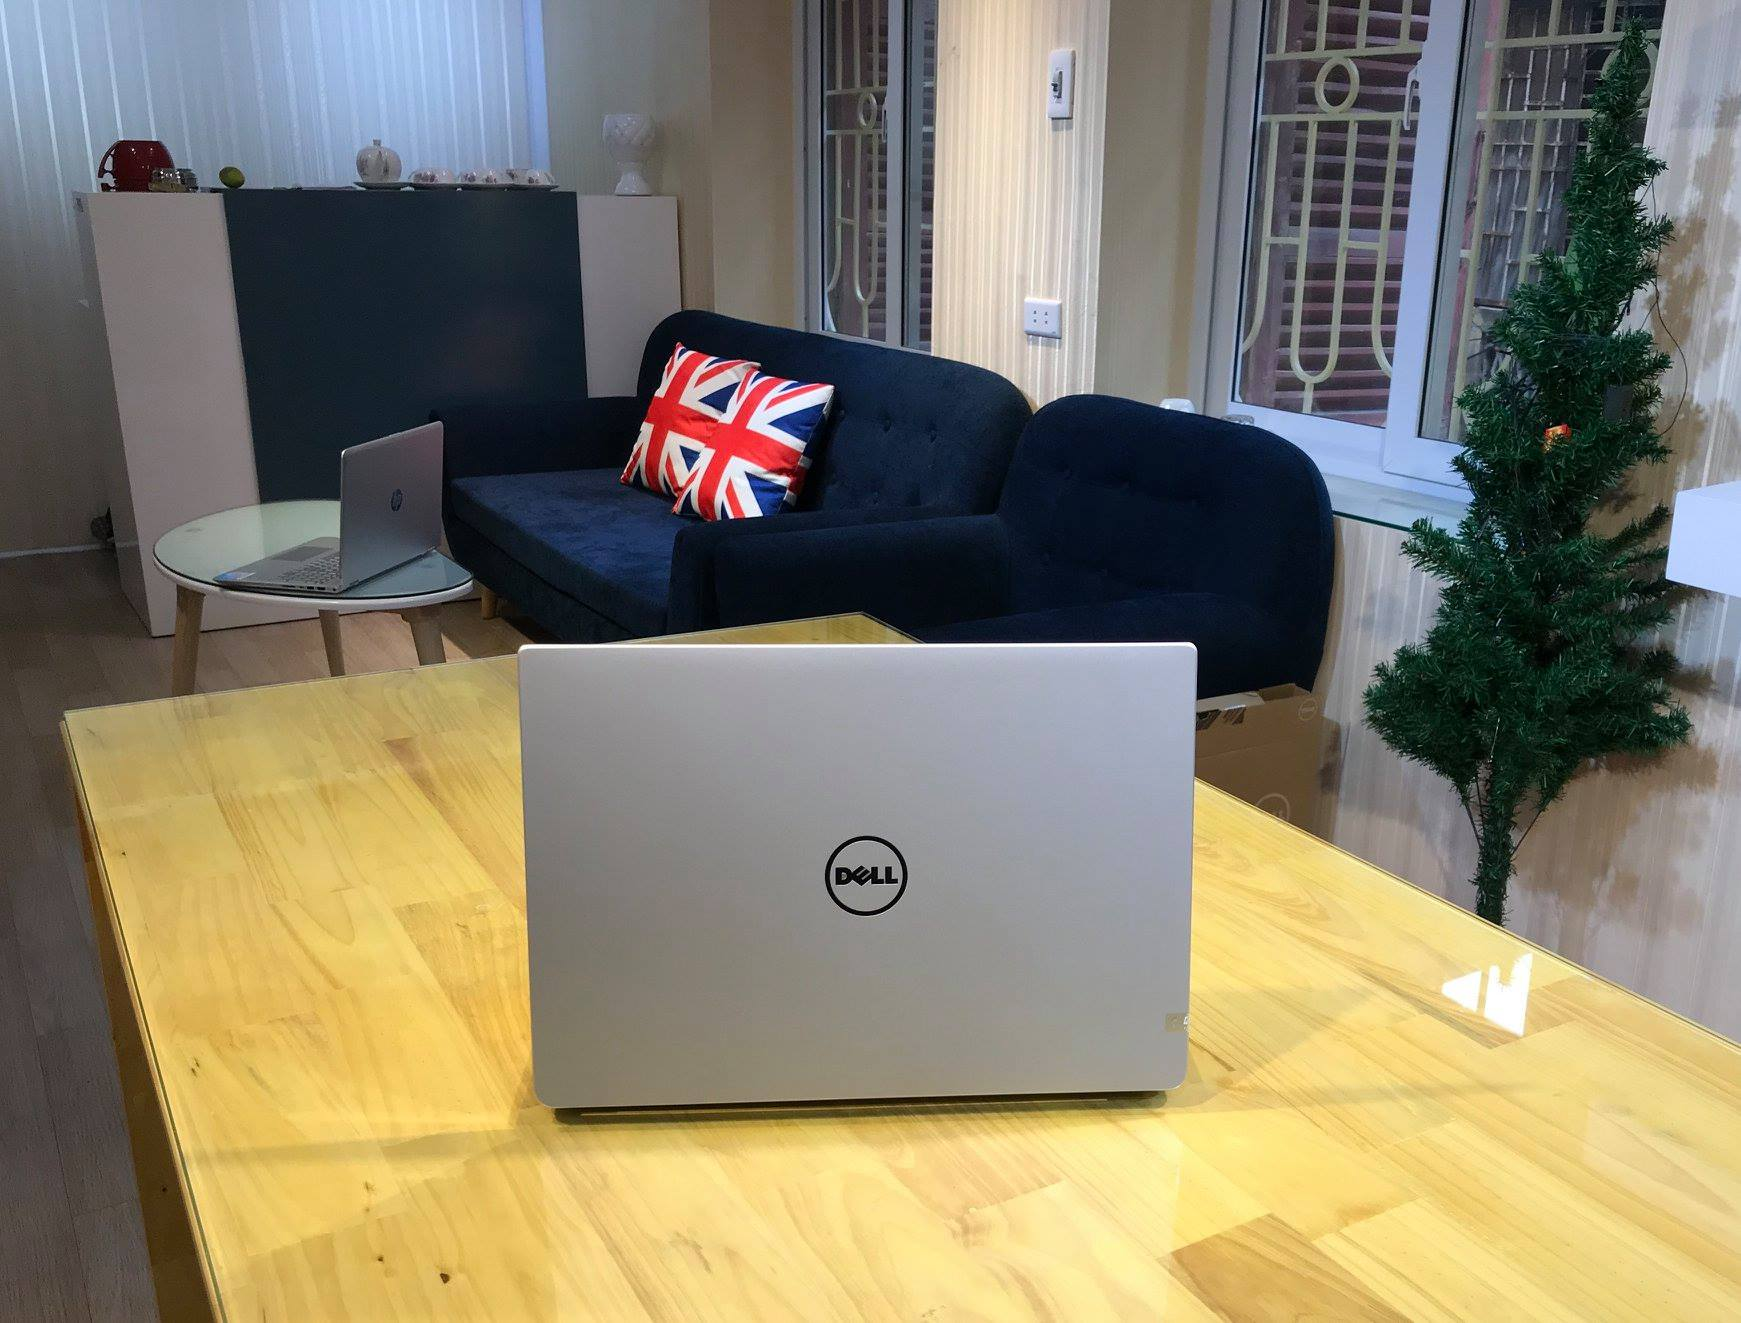 Laptop Dell inspiron 7460 -2.jpg